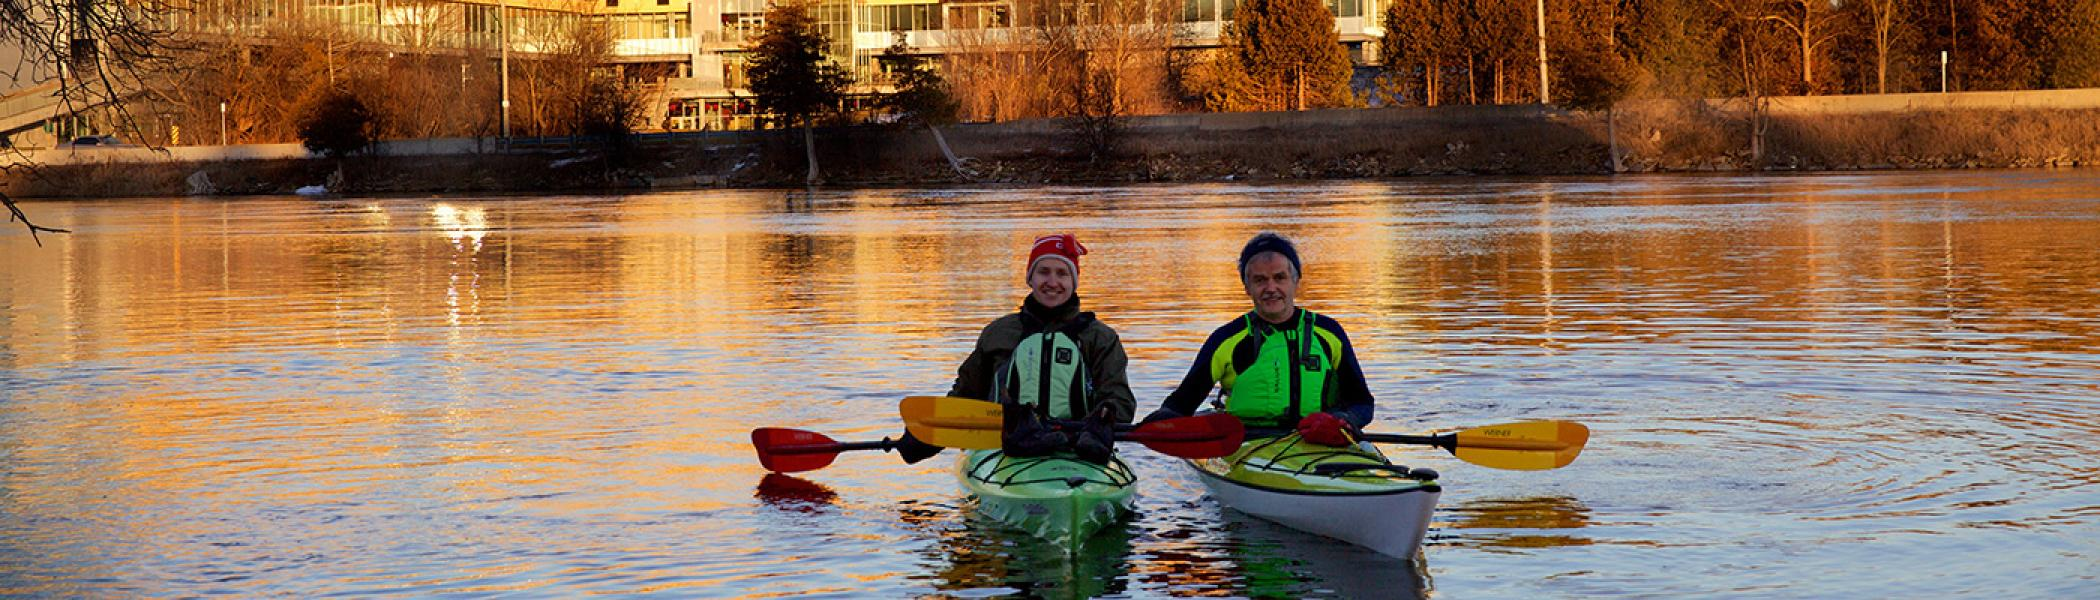 President Groarke kayaking on the Otonabee with colleague in February